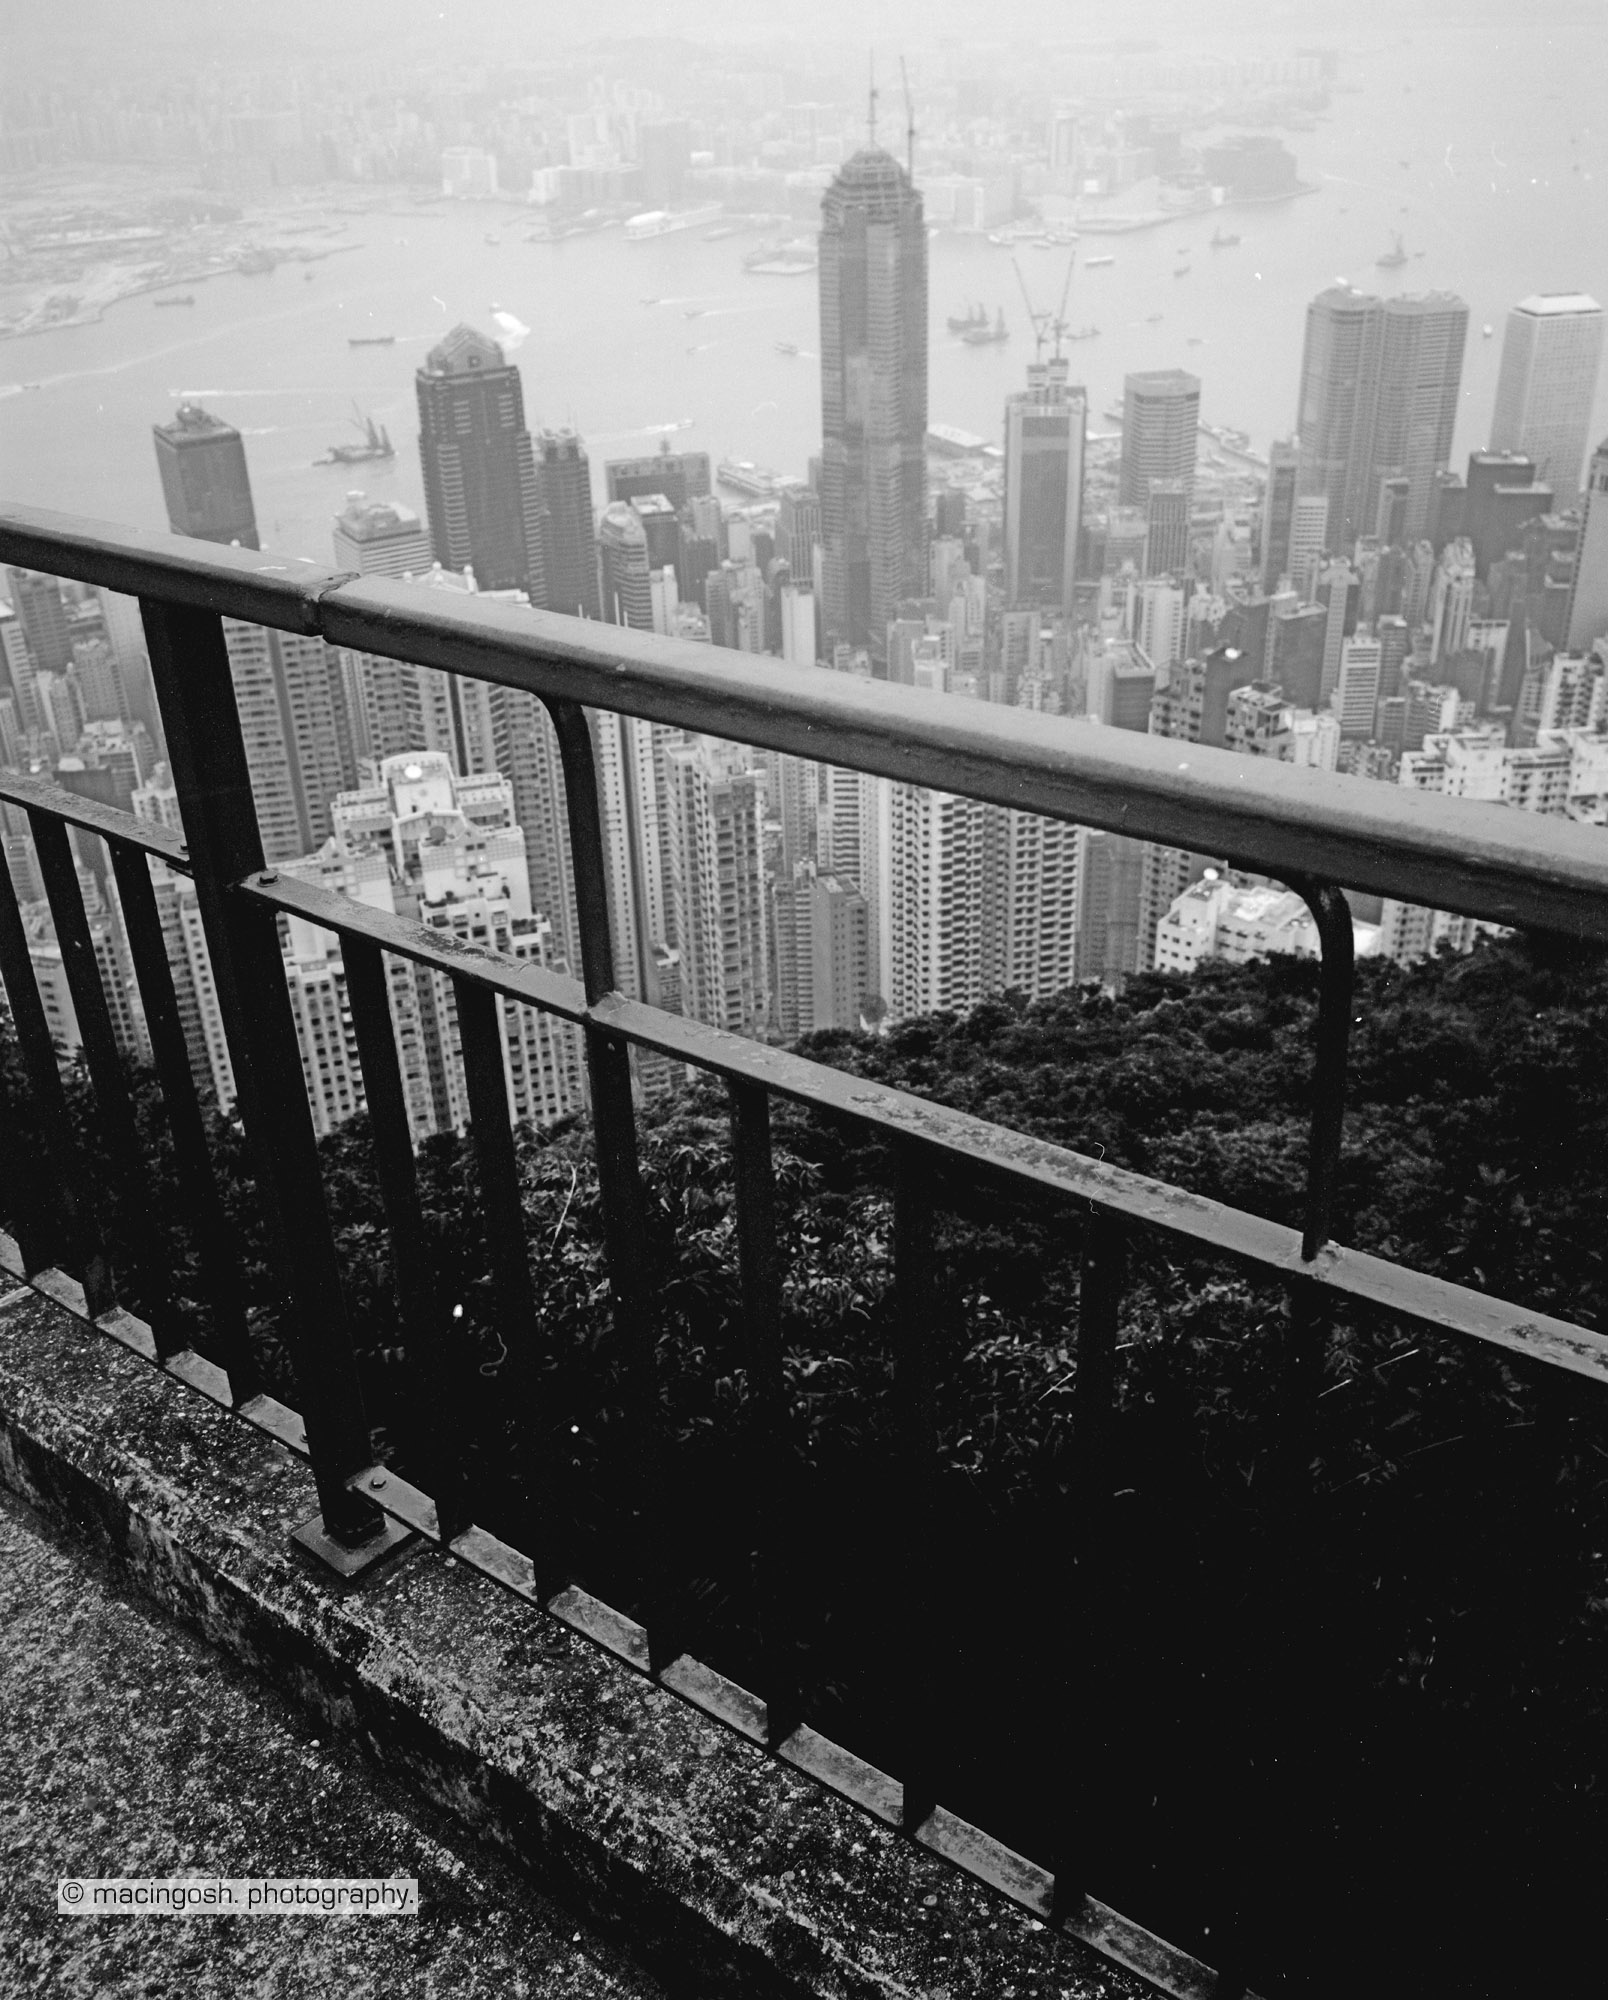 Victoria Peak, Tai Ping Shan, Hong Kong, macingosh photography